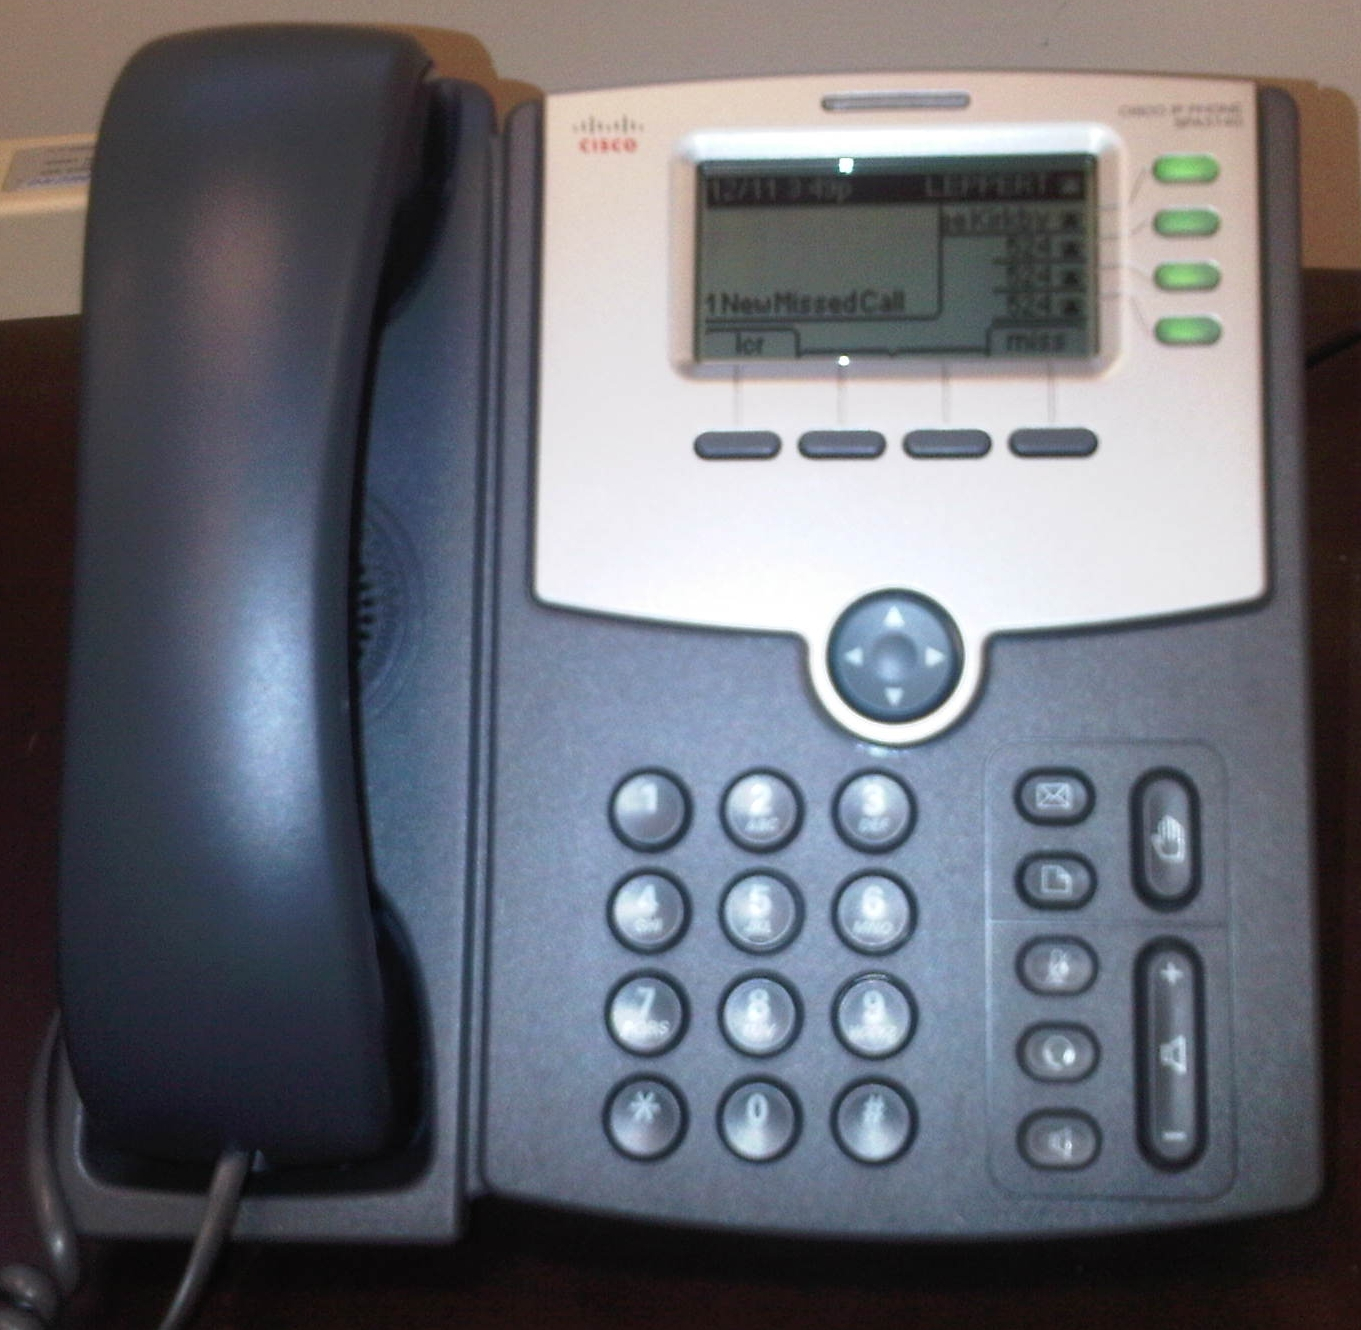 Cisco Voip Phone on Desk